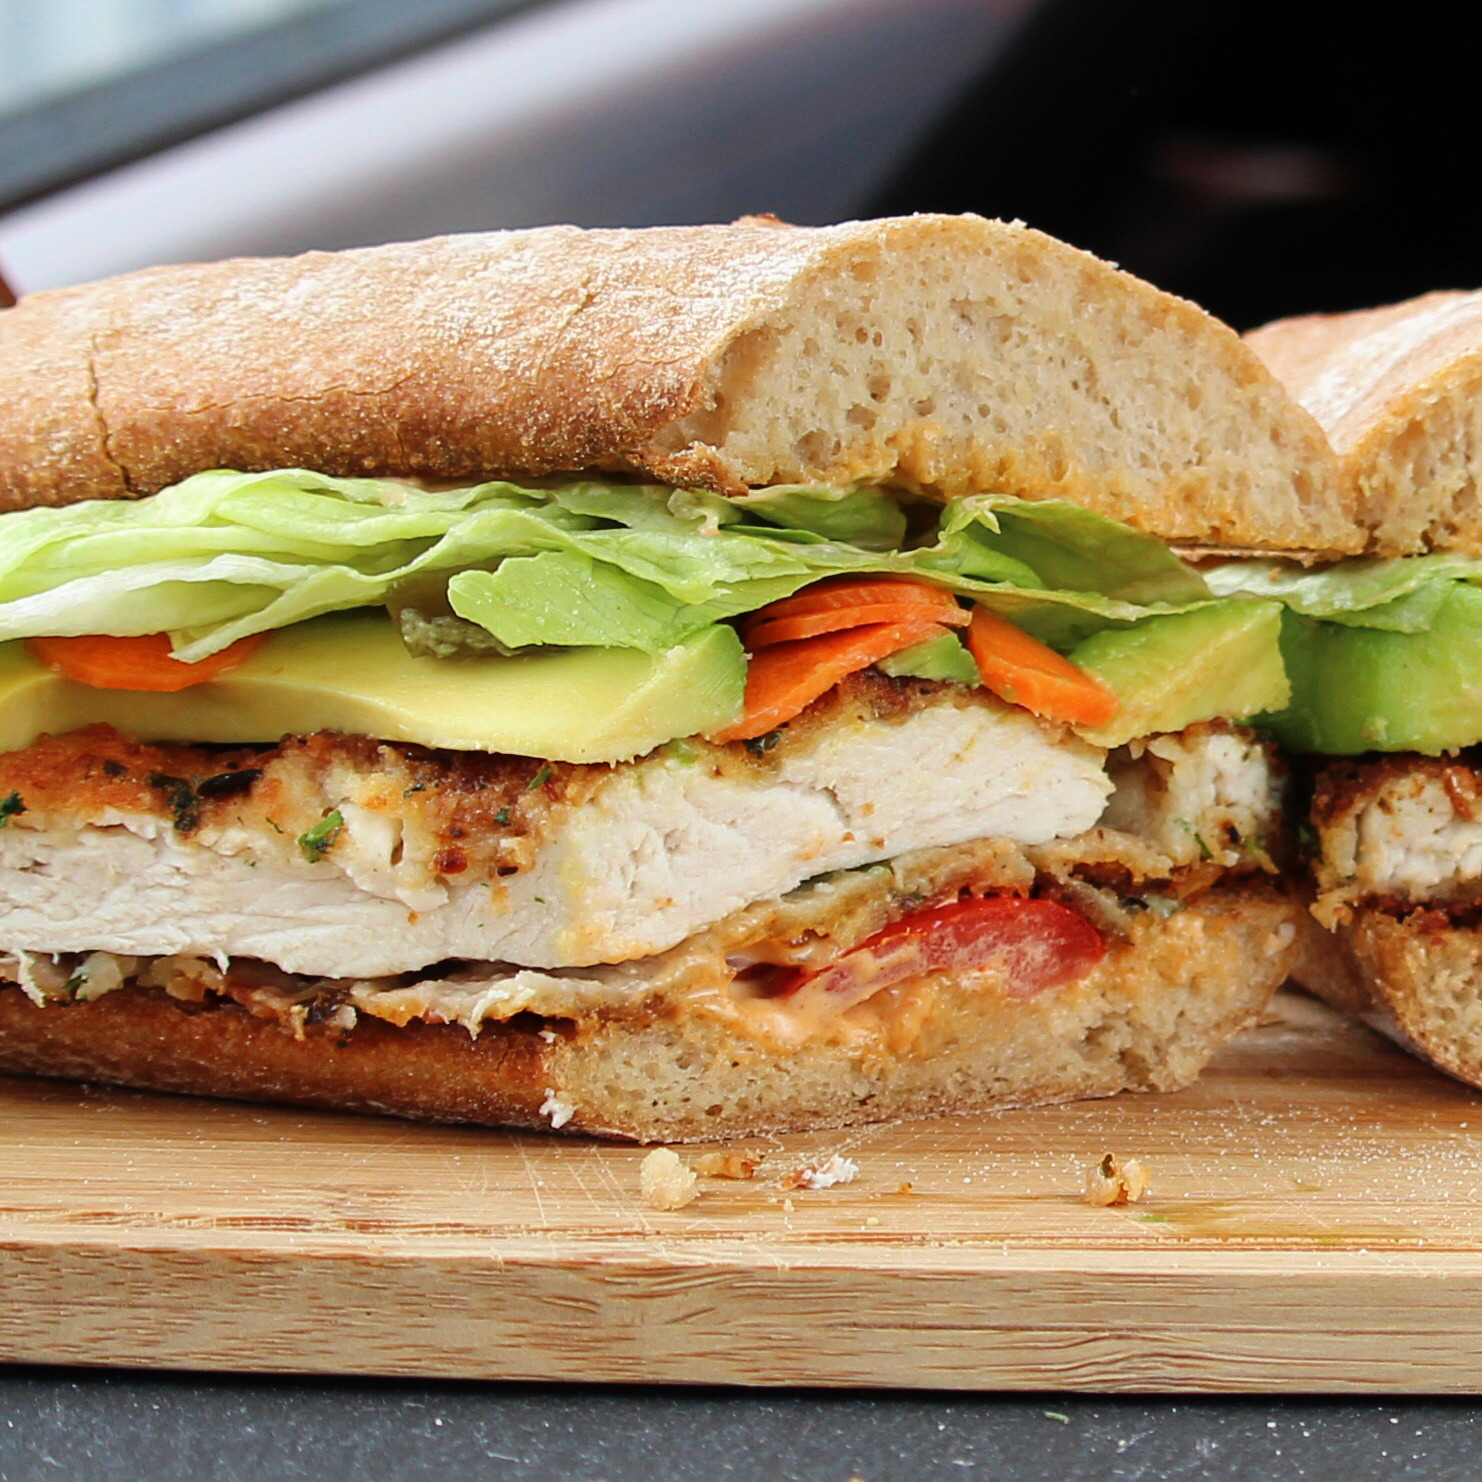 In this mouthwatering Mexican-style fried chicken sandwich, strips of crispy breaded chicken are served in warm rolls with spicy mayo, avocado, tomato, lettuce, pickled carrots, and jalapenos. Serve with the remaining spicy mayonnaise for dipping.